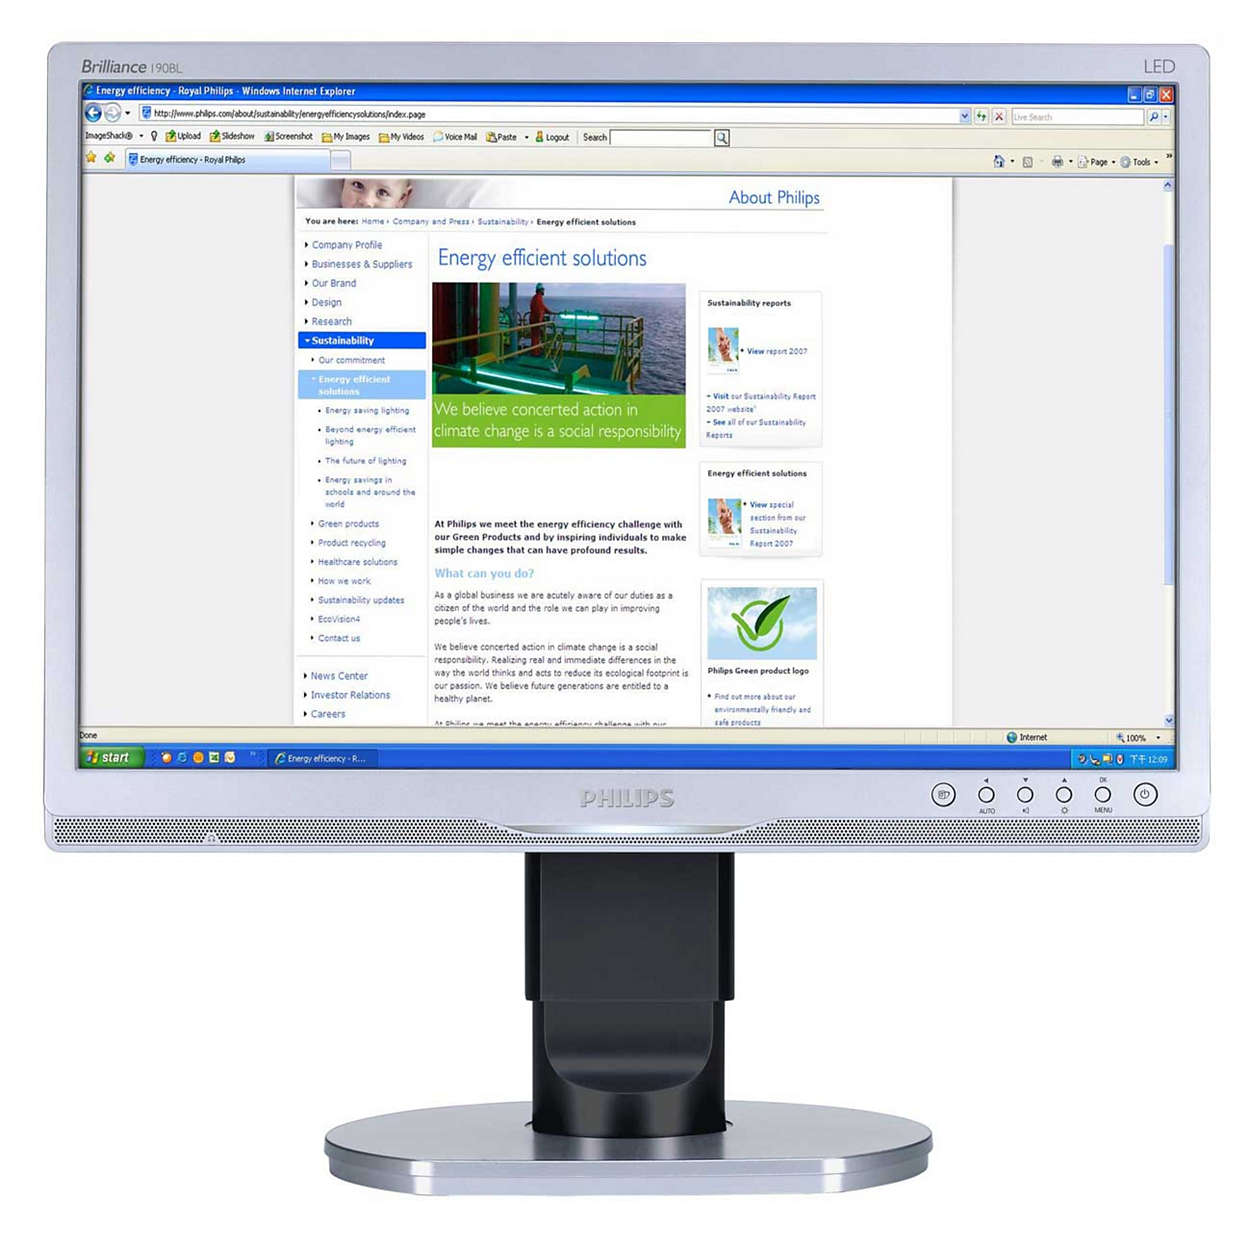 Ergonomic business display enhances productivity